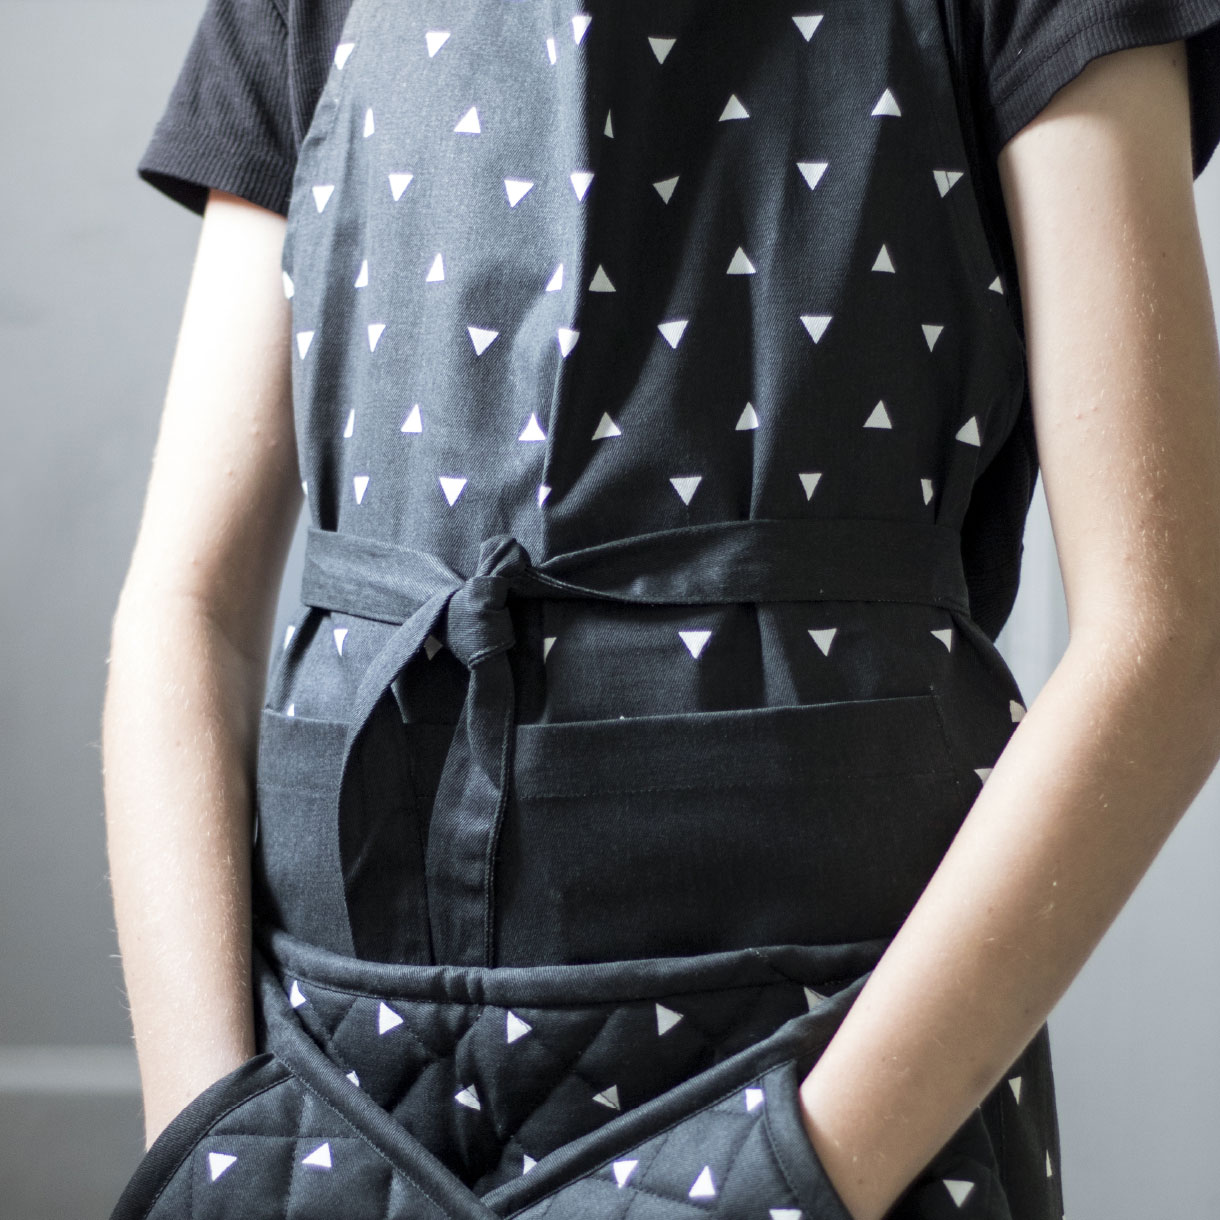 Principle brand agency Dublin Woodie's homewares brand design project scandi collection woman wearing apron